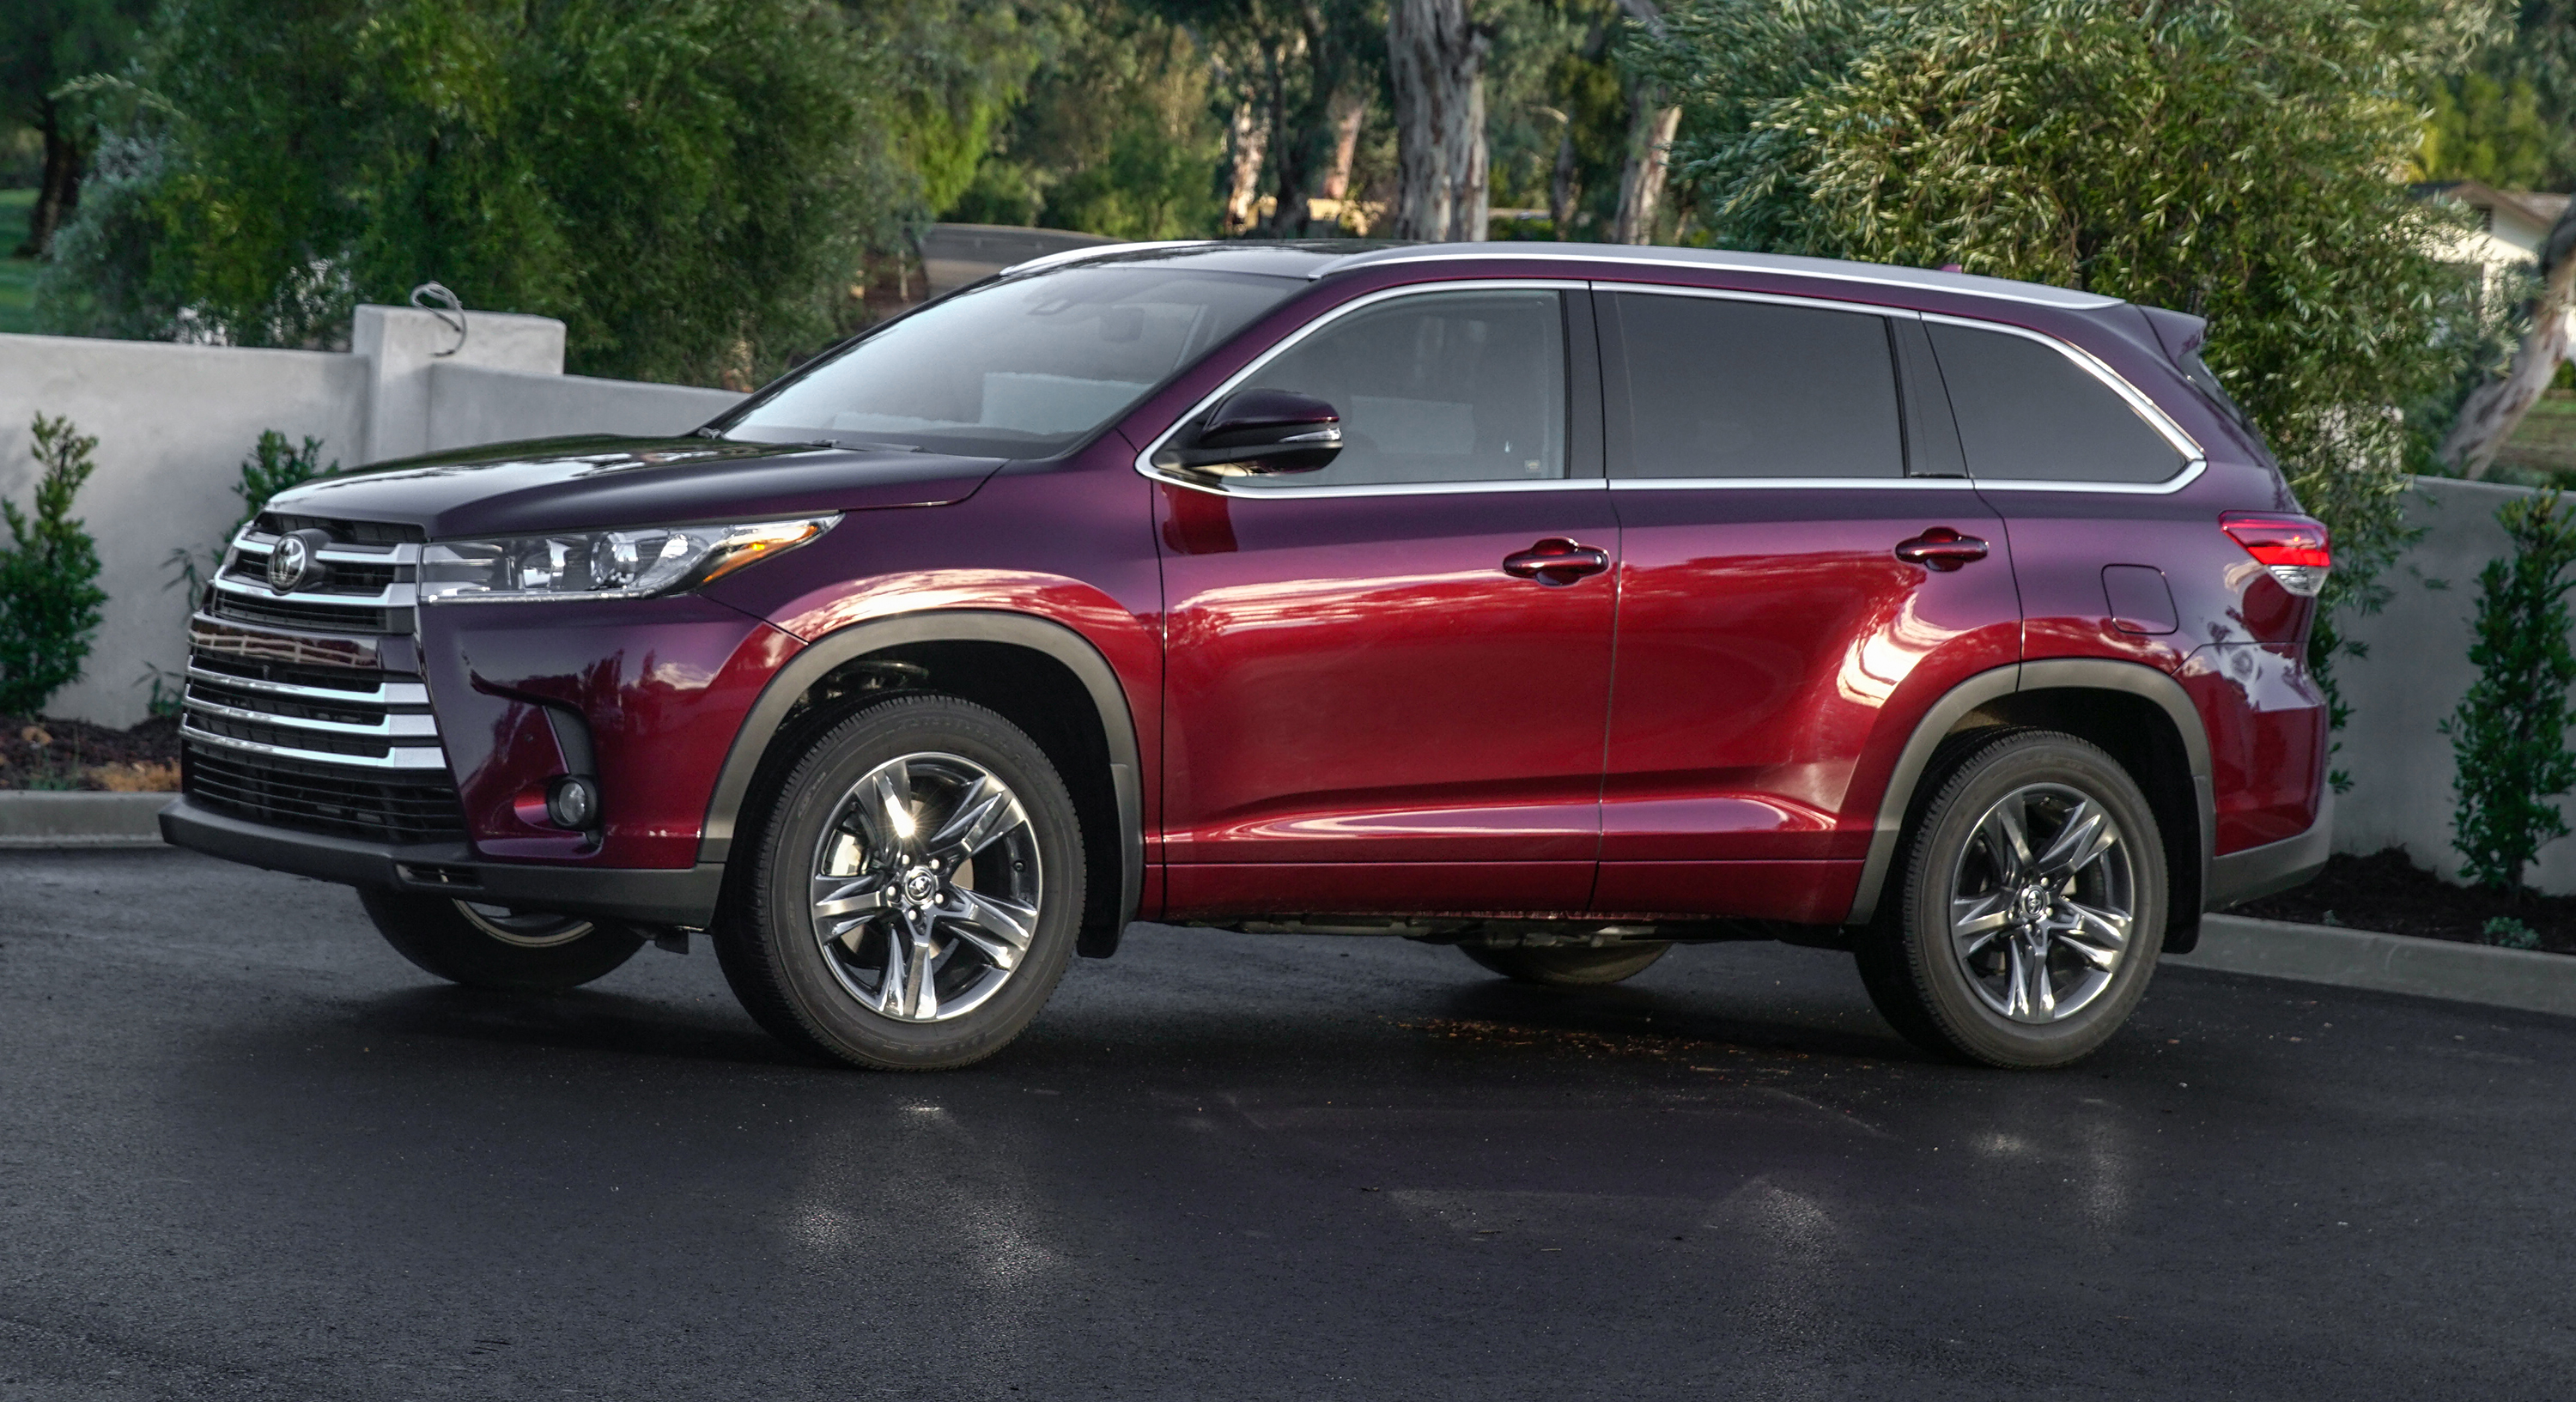 Toyota kluger photo - 9